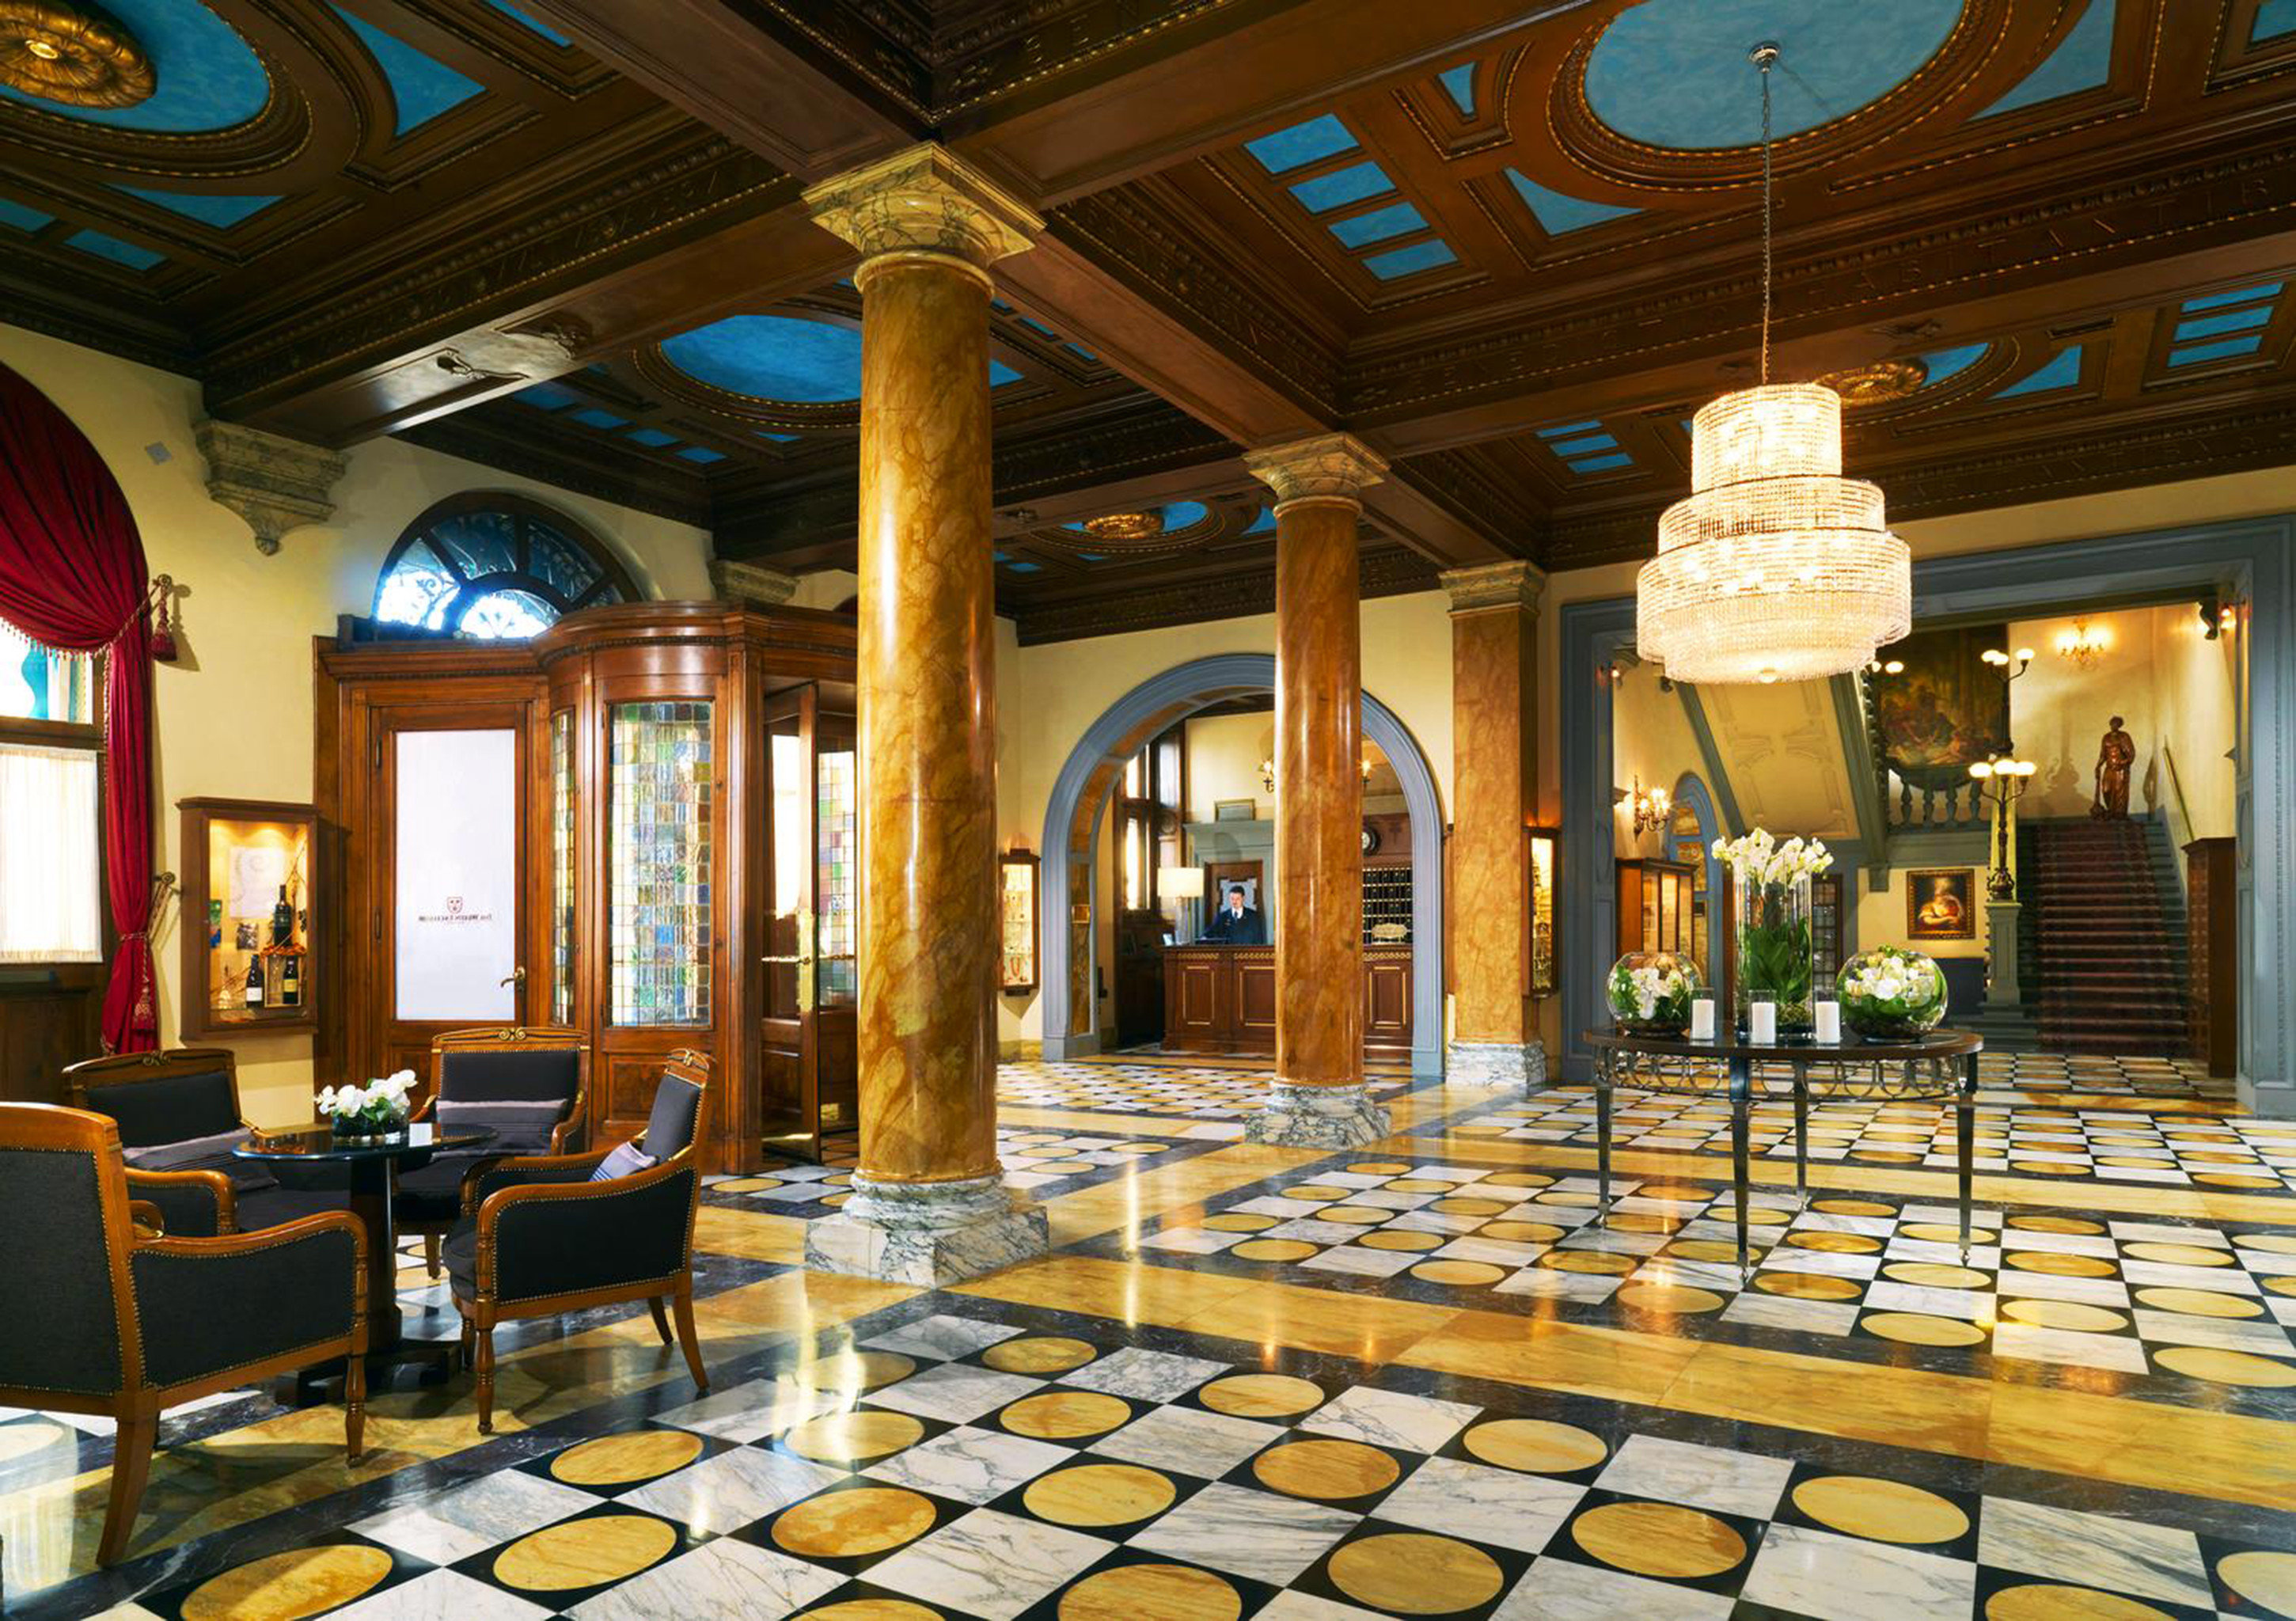 Elegant Historic Lobby Luxury building palace function hall restaurant ballroom mansion Resort living room